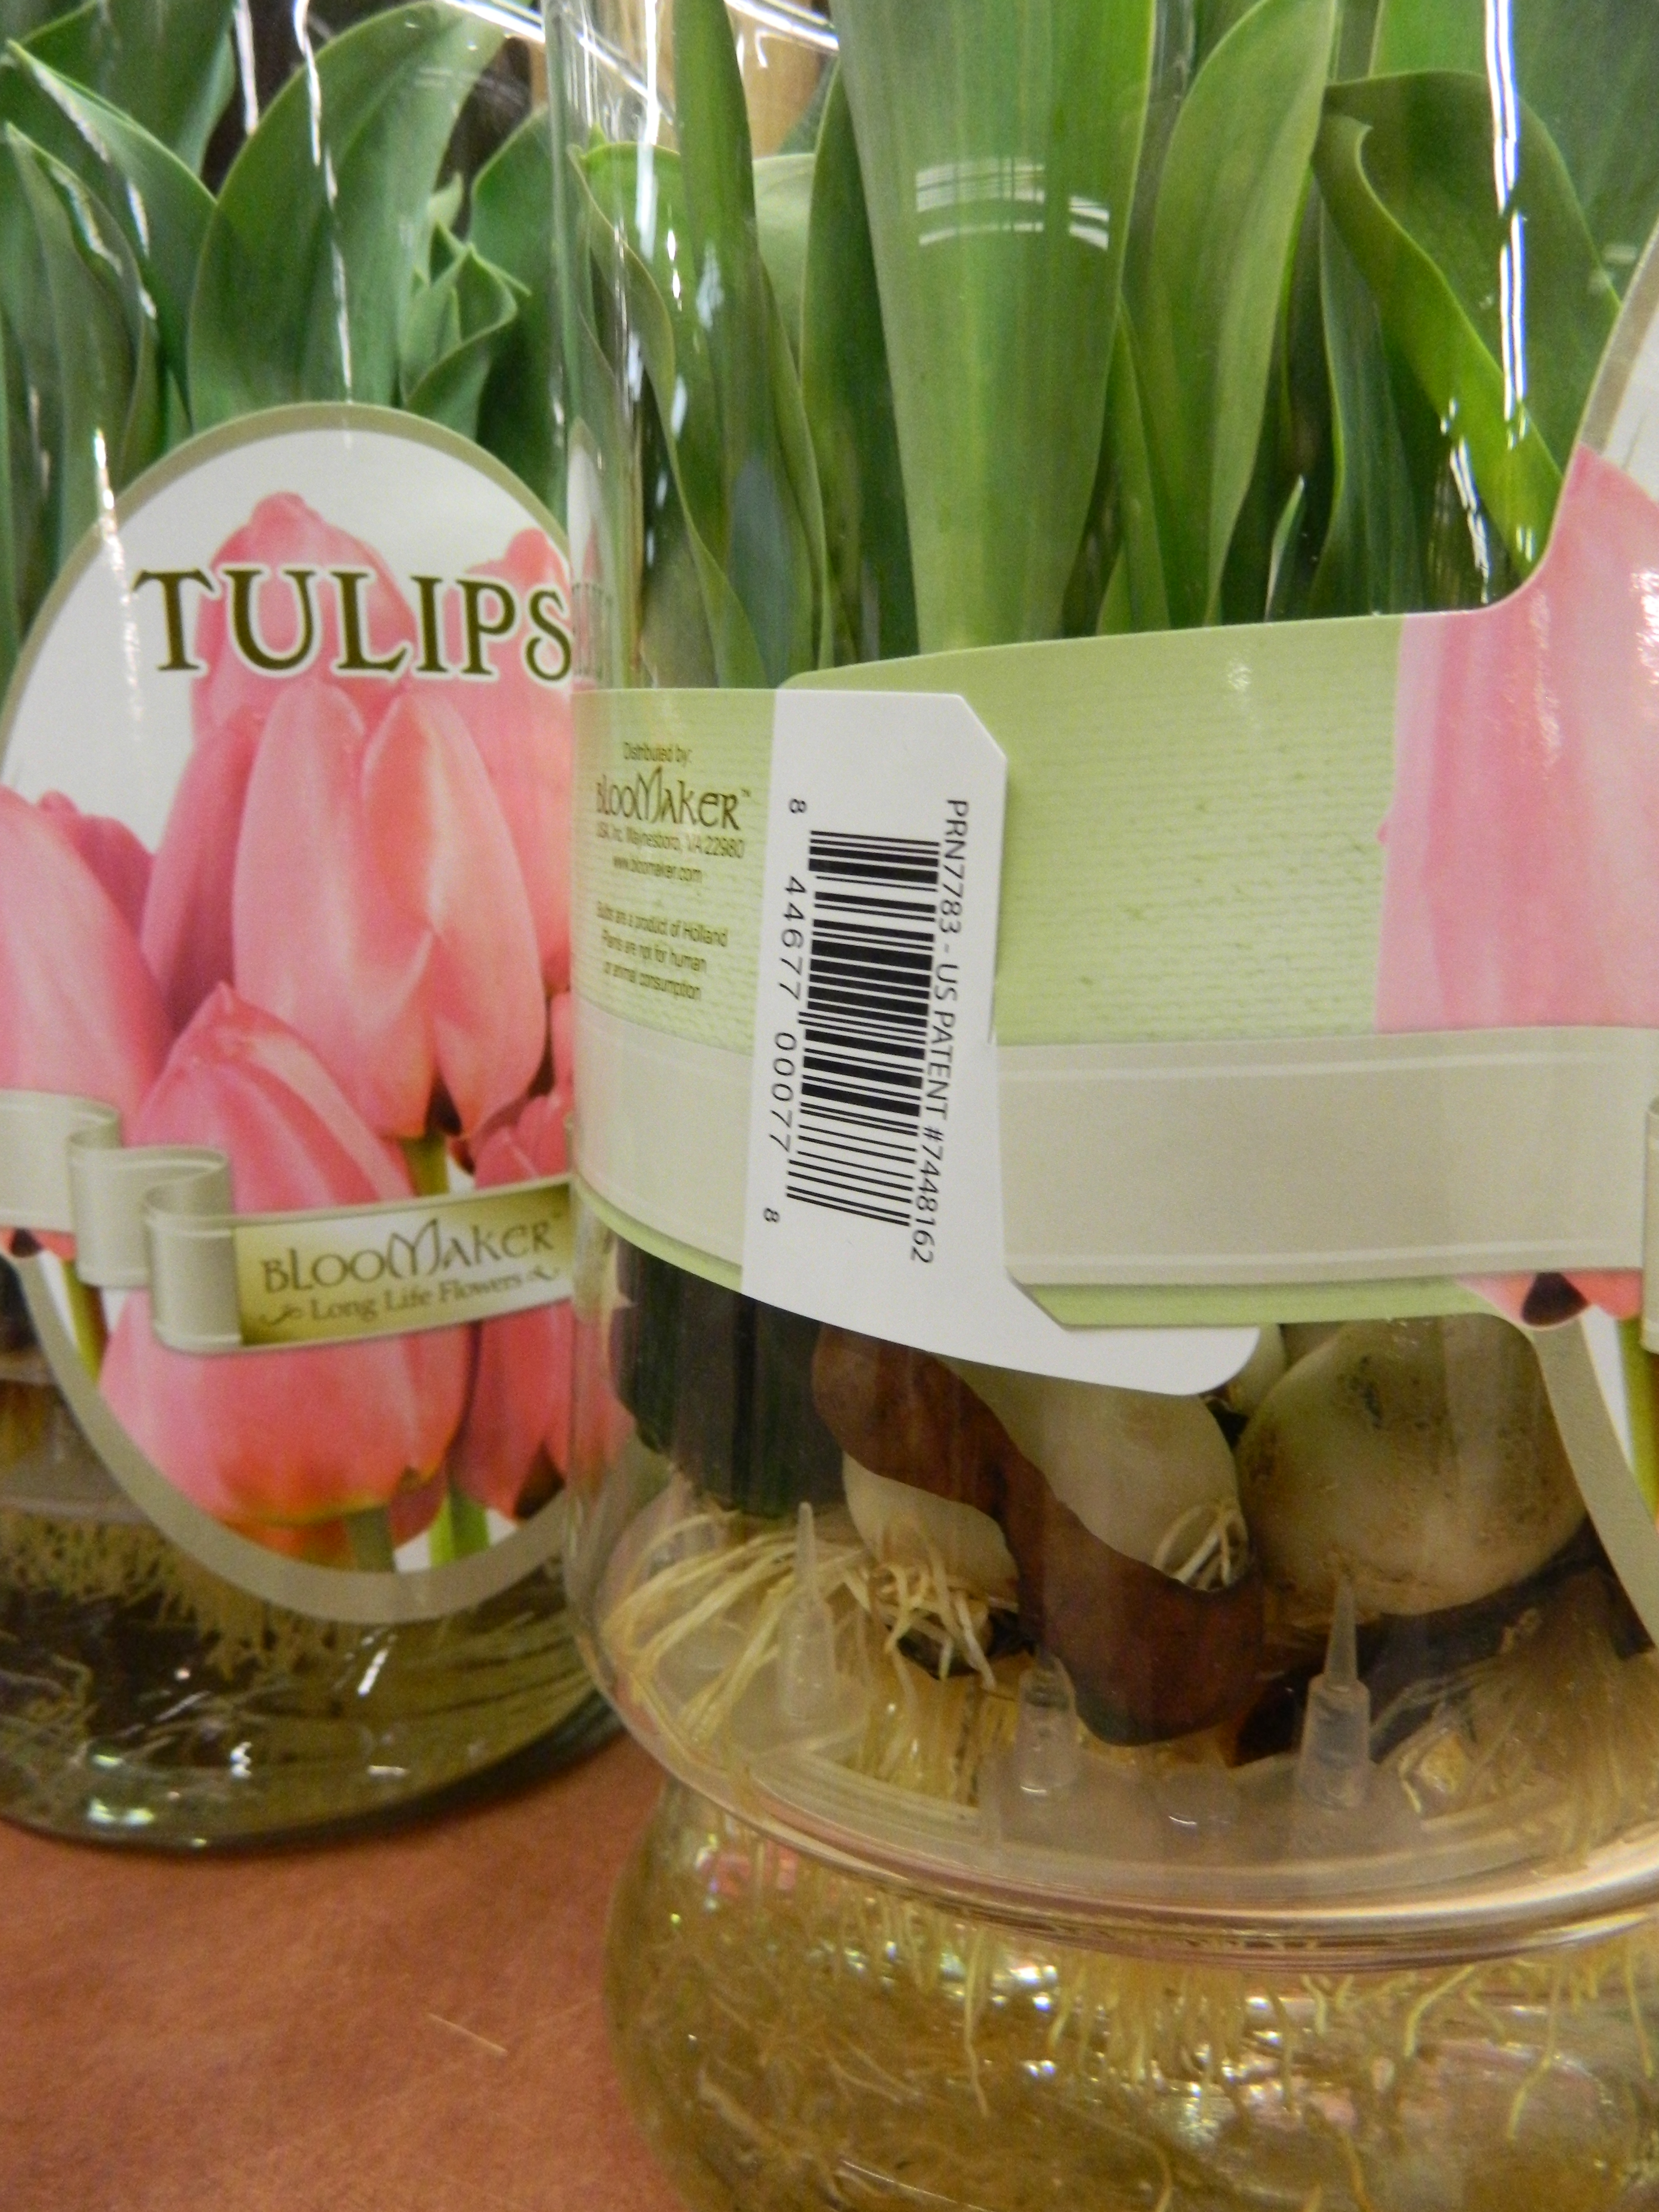 Kimberly l jackson new jersey gardens water grown tulips and kimberly l jackson new jersey gardens water grown tulips and hyacinths at wegmans stores reviewsmspy